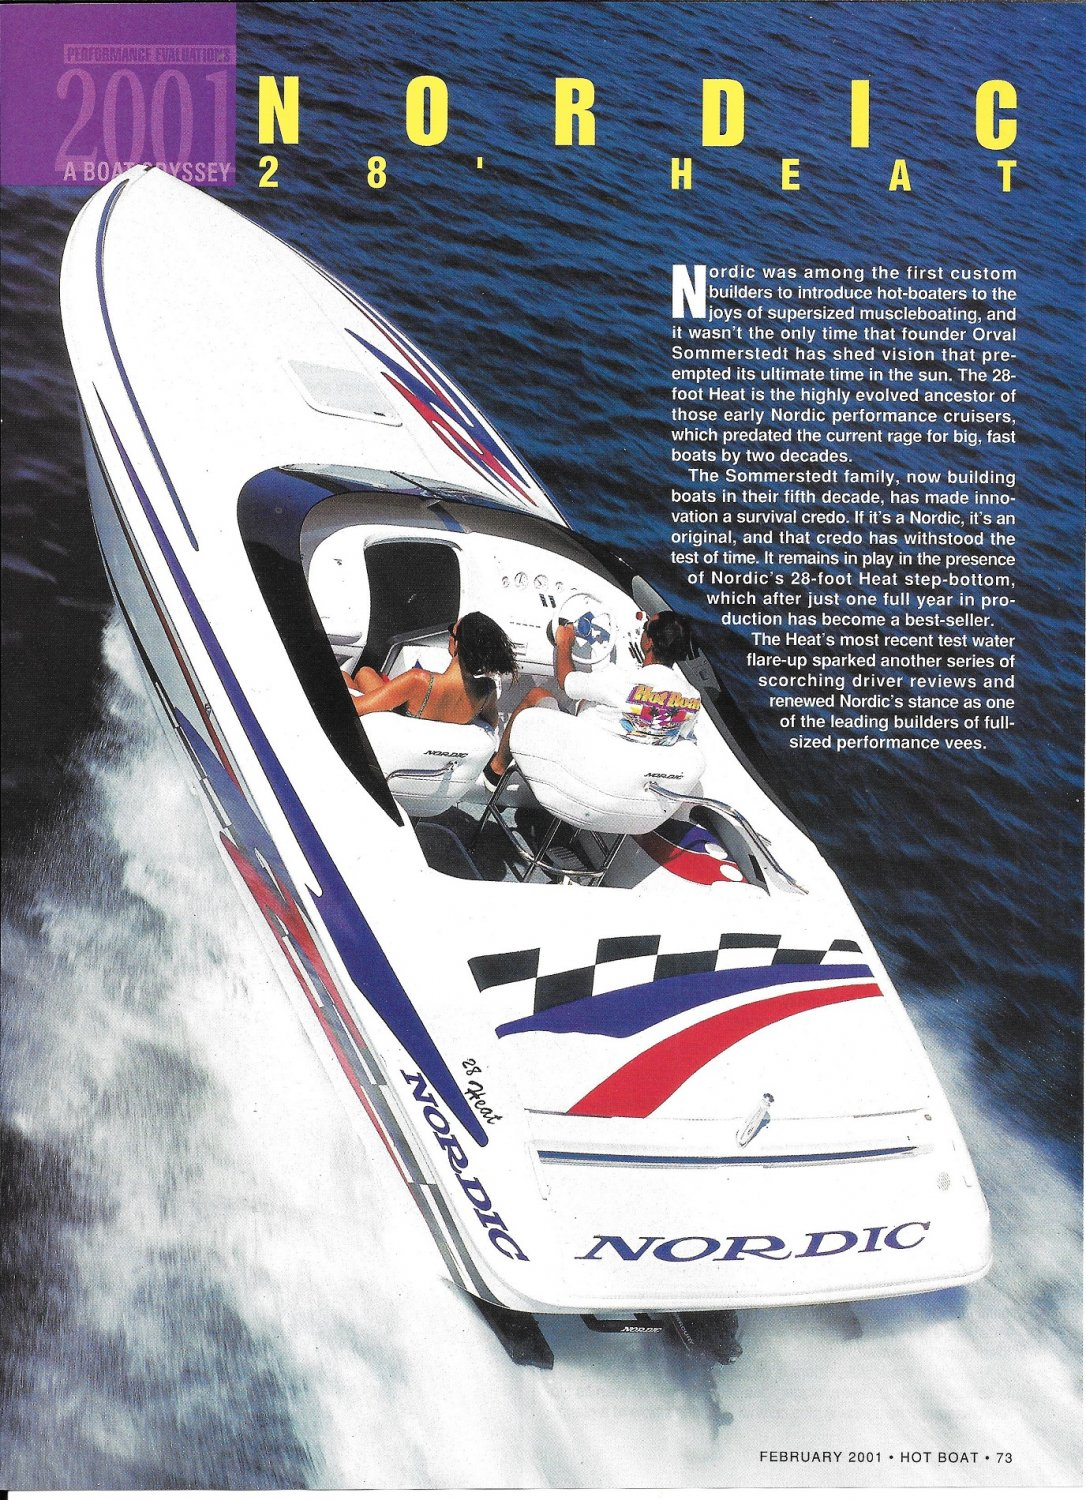 2001 Nordic 28 Heat Boat Review- Boat Specs & Great photos- Hot Girl